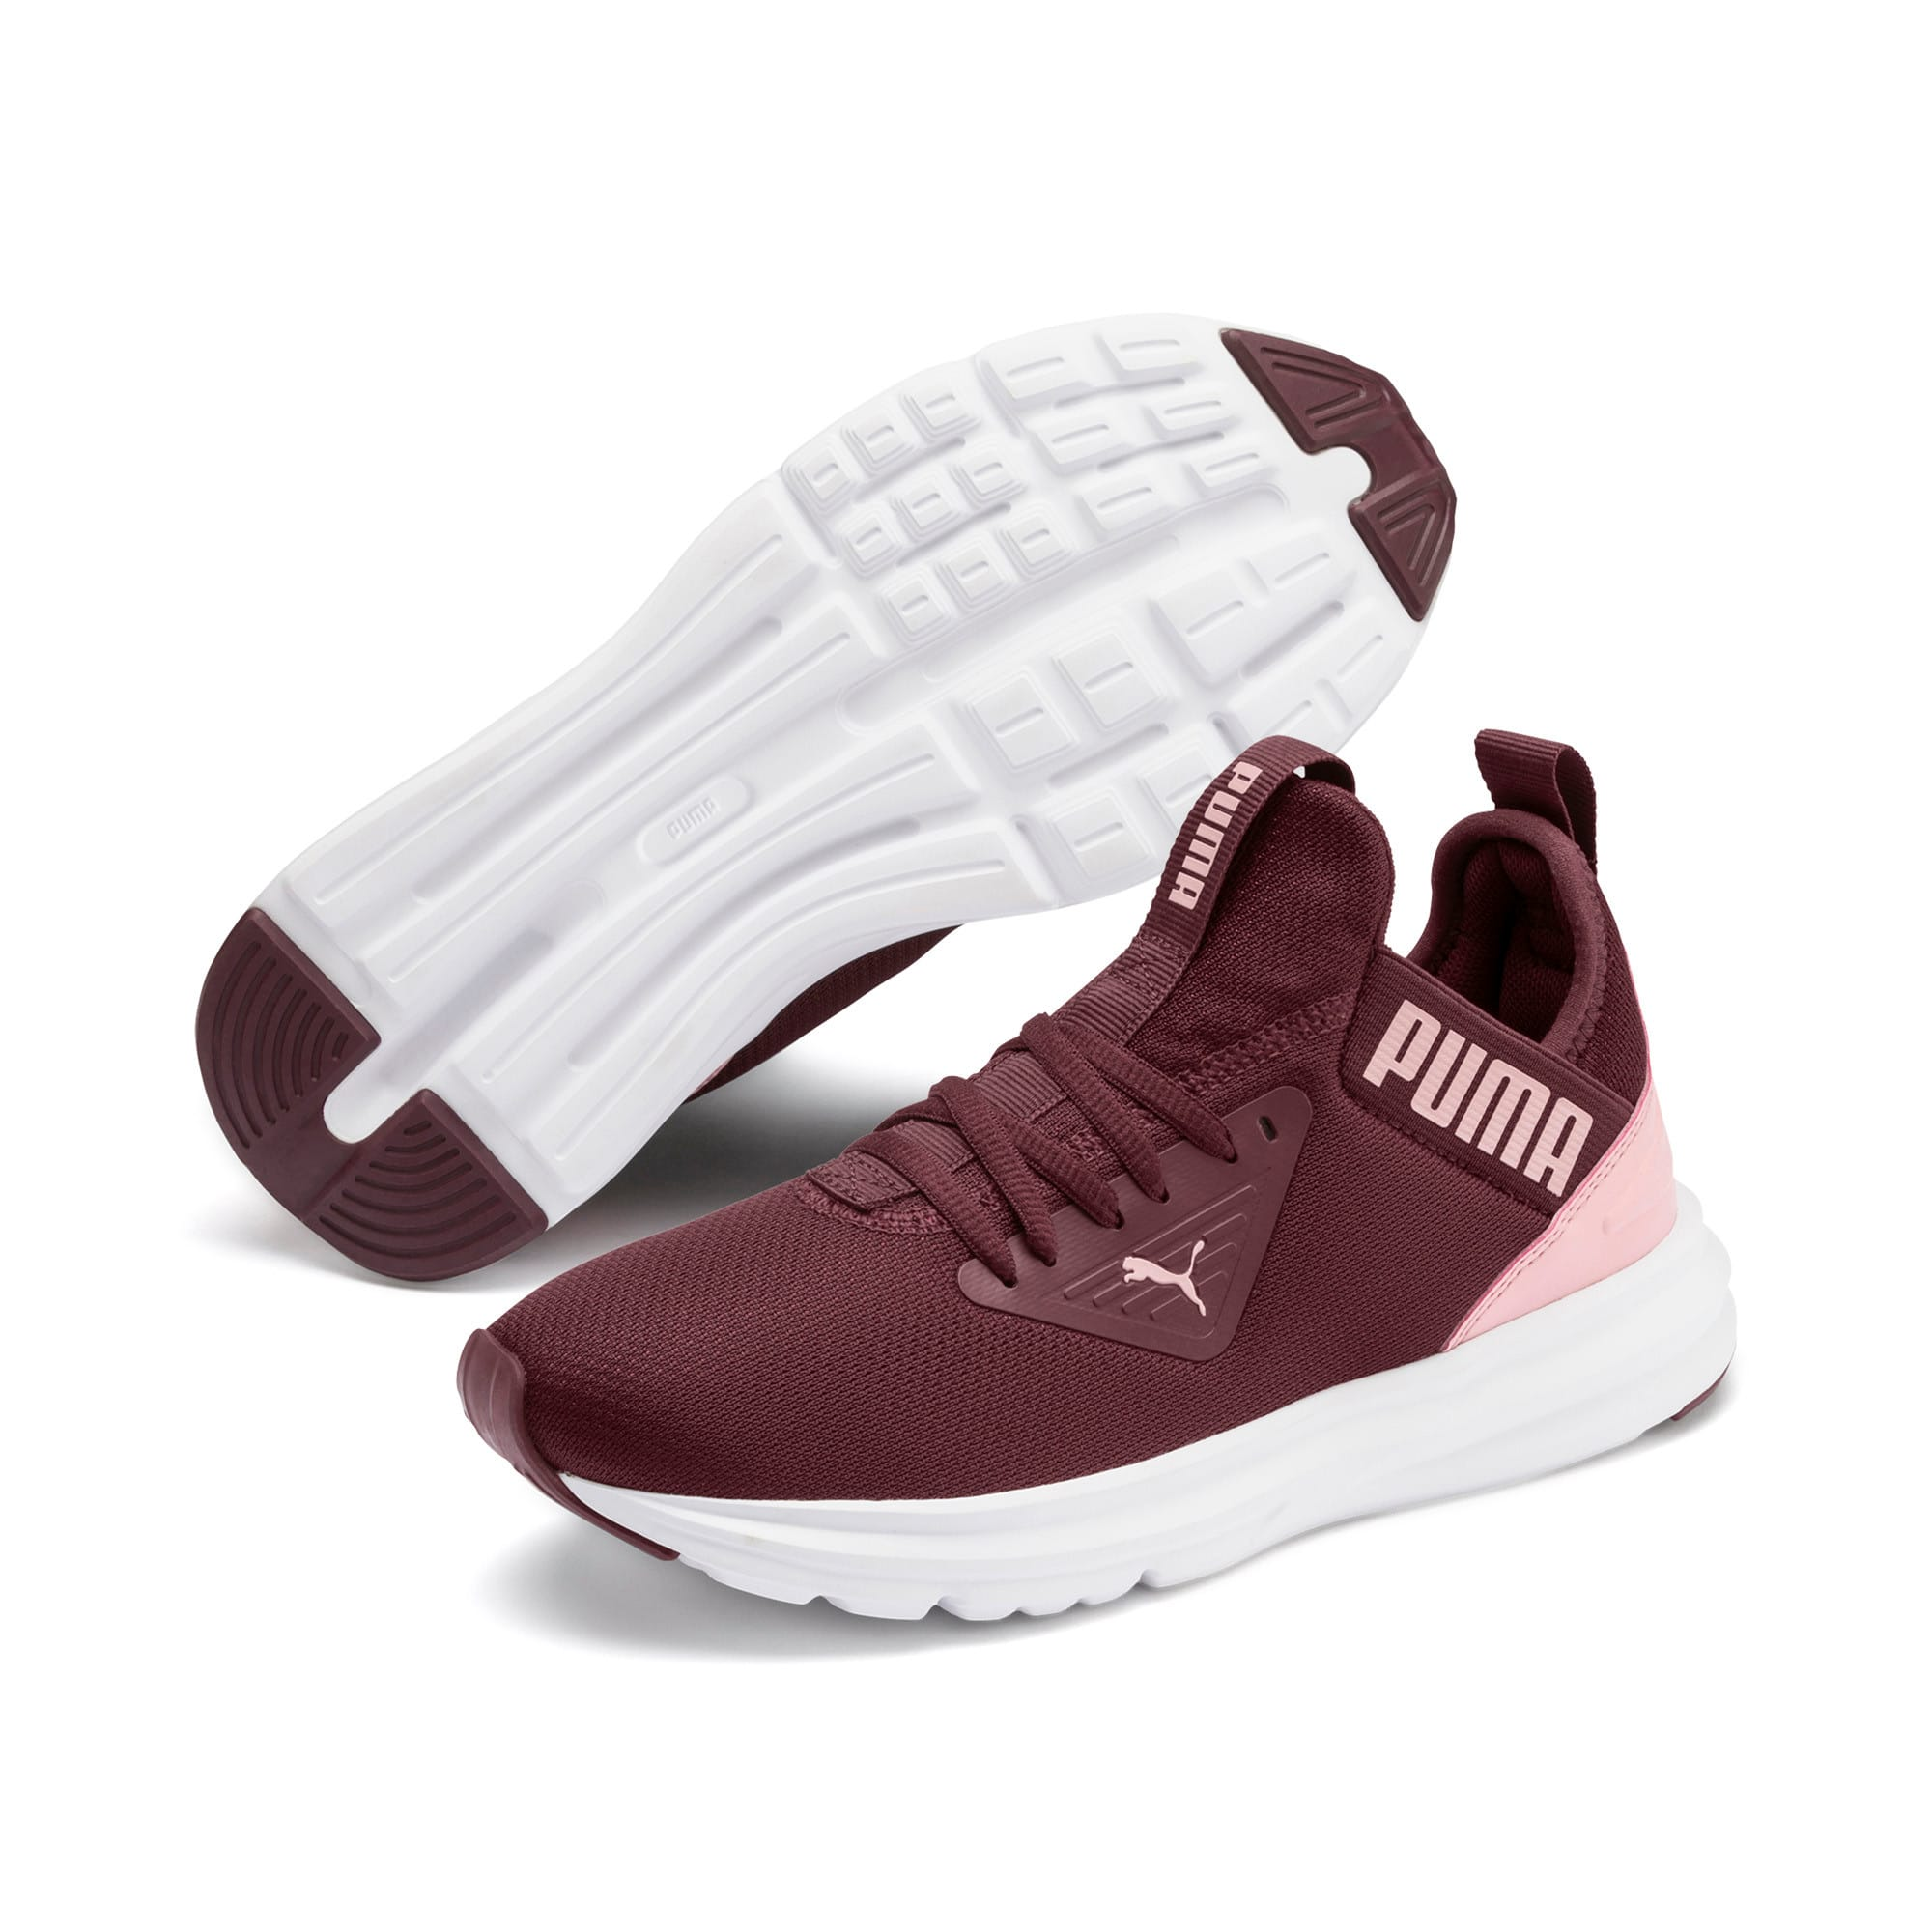 Thumbnail 2 of Enzo Beta Shine Sneakers JR, Vineyard Wine-Bridal Rose, medium